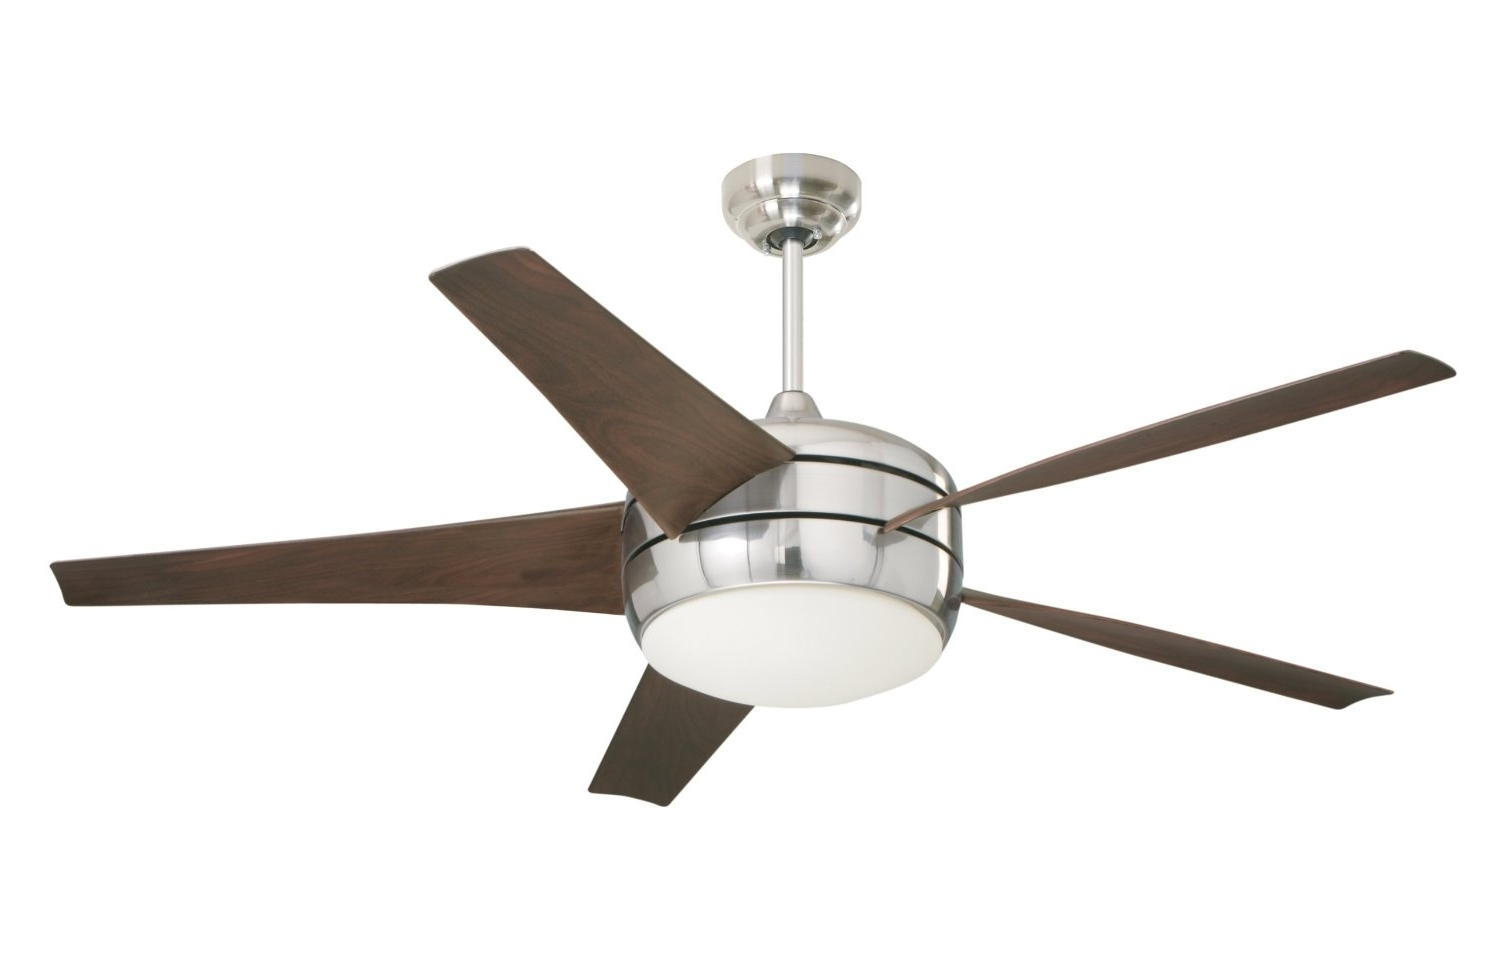 Most Recently Released Best Ceiling Fans Reviews, Buying Guide And Comparison 2018 With Emerson Outdoor Ceiling Fans With Lights (View 16 of 20)